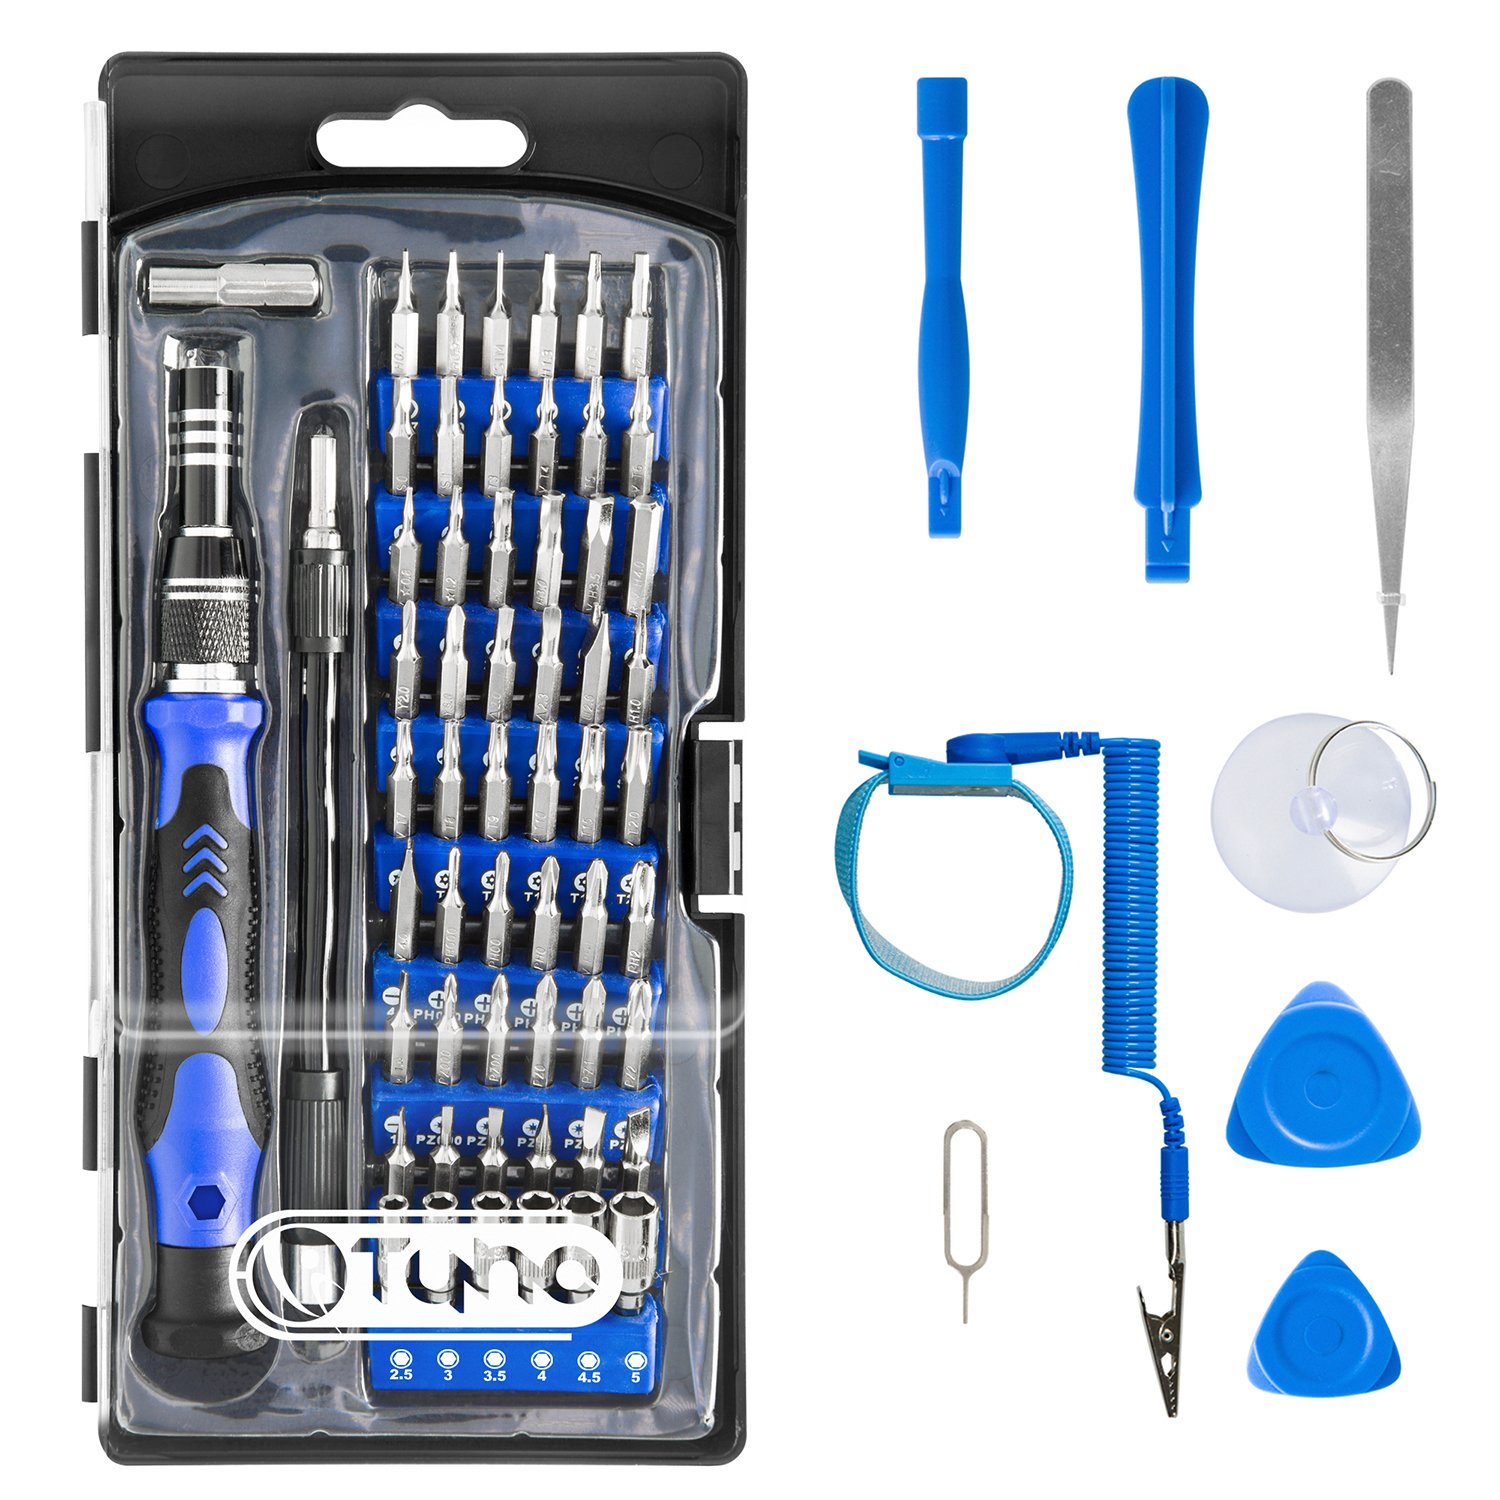 Precision Screwdriver Set TyhoTech 65 in 1 Magnetic Screwdriver Set Repair Tools Kit with 54 Bits Driver Kit for iPhone iPad Laptop Smartphones MacBook PC Watches Xbox Glasses Cameras by TyhoTech